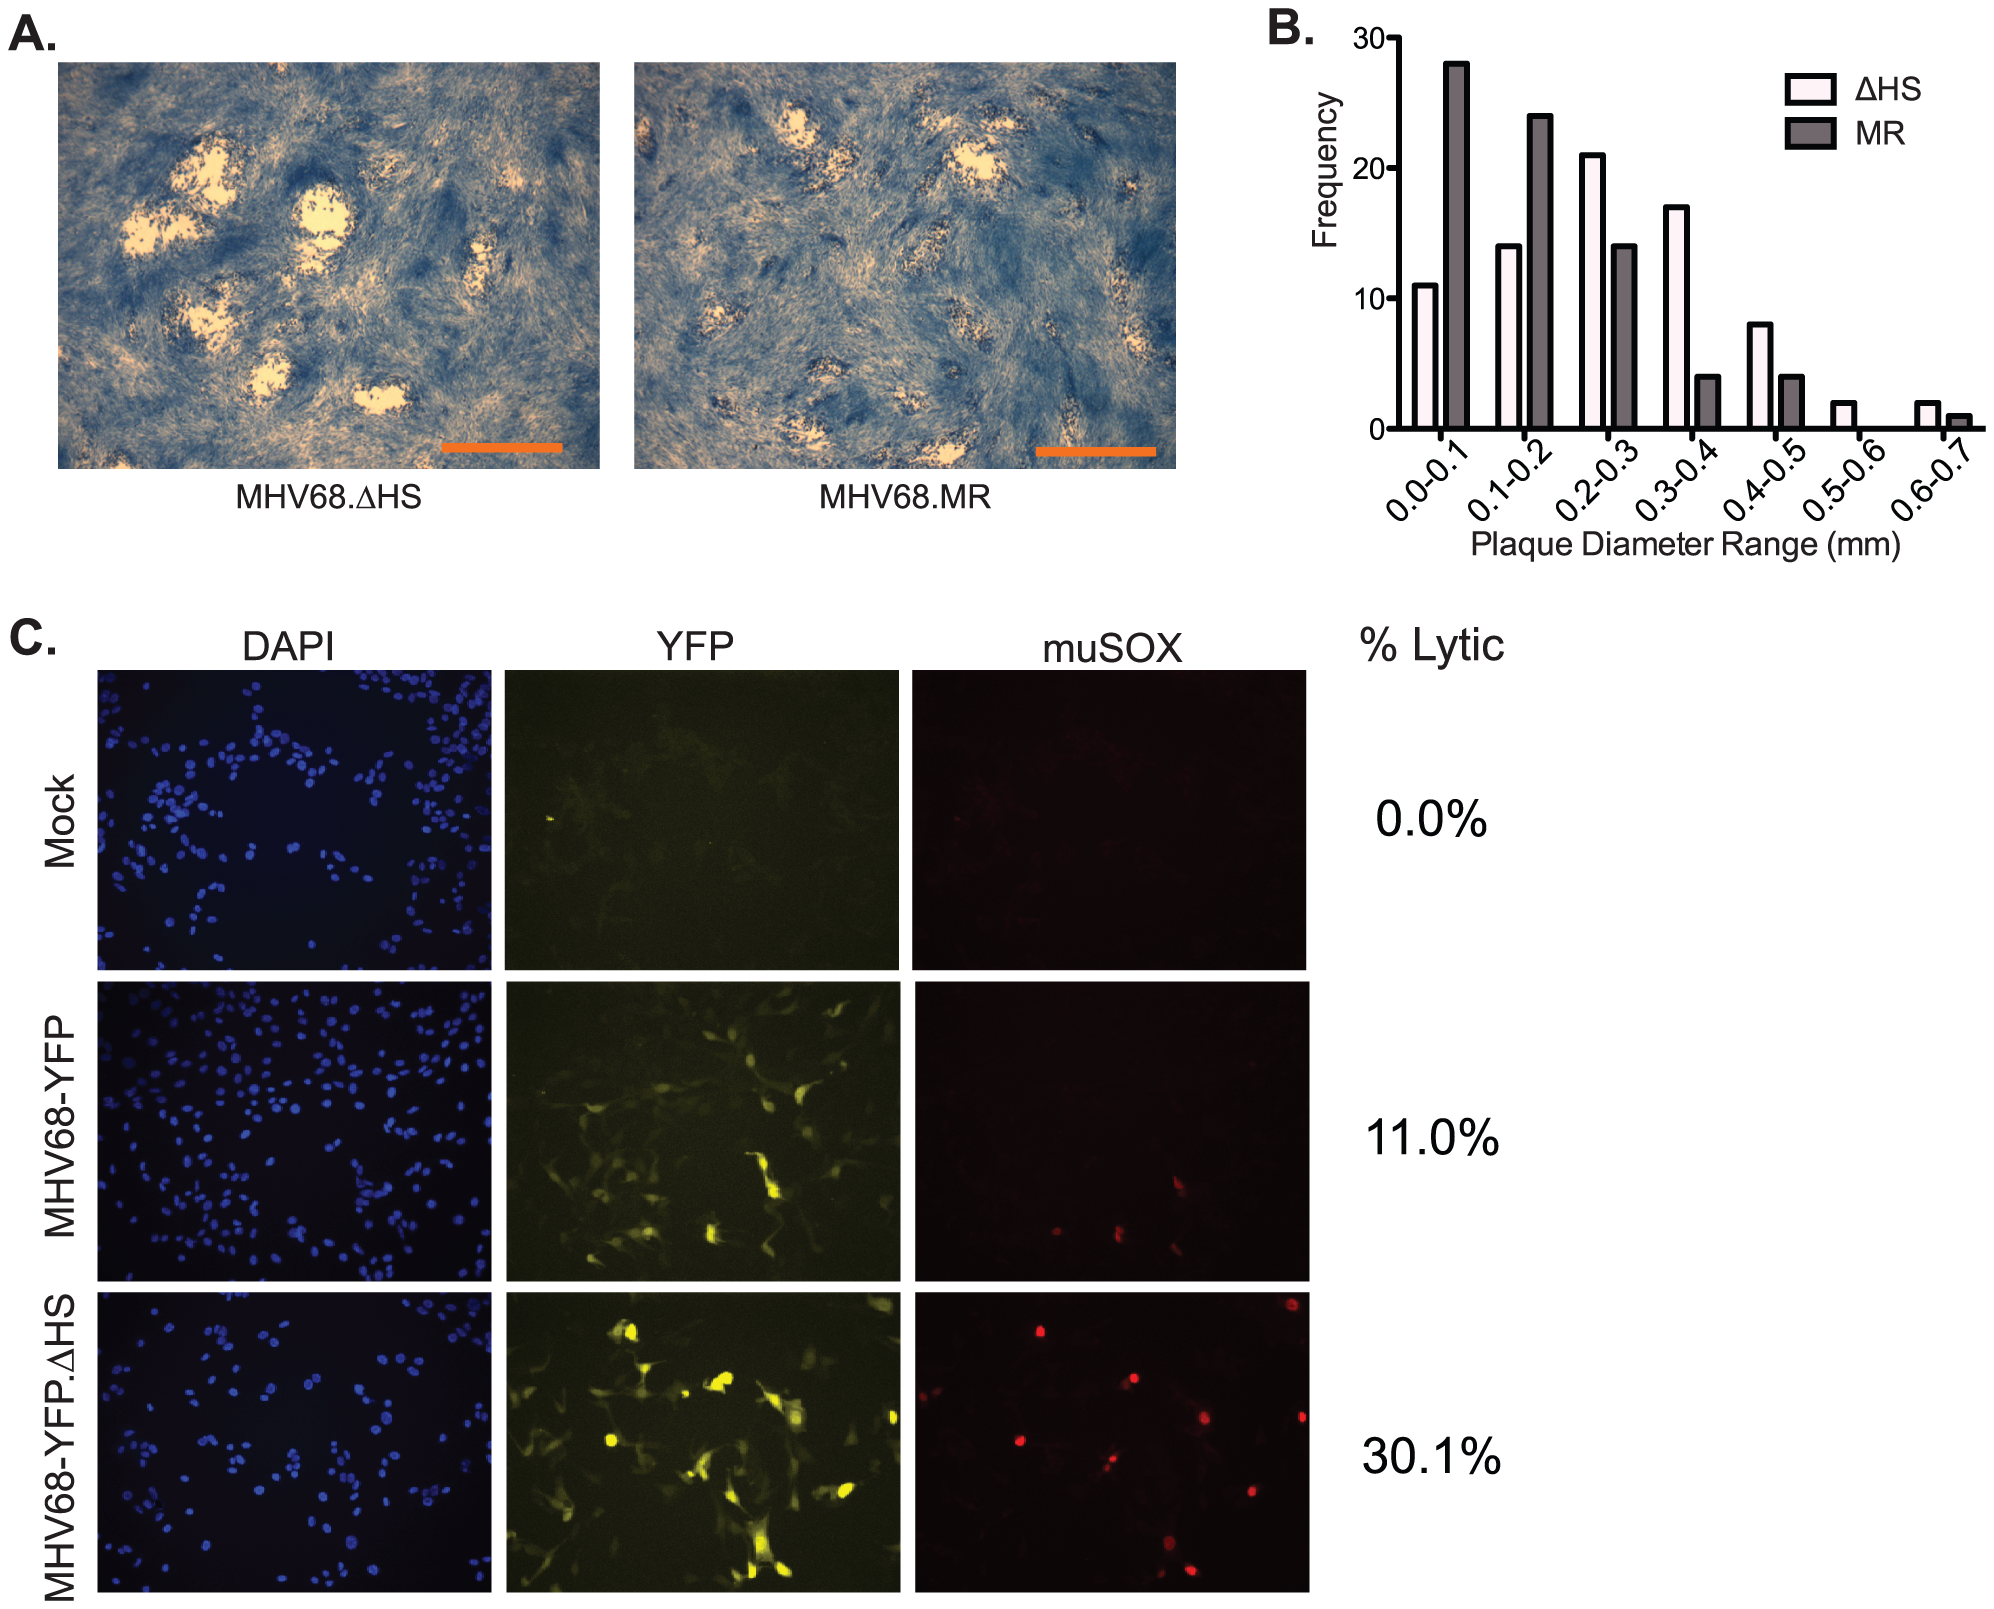 MHV68.ΔHS generates larger plaques and increases the percentage of lytic antigen-expressing cells.